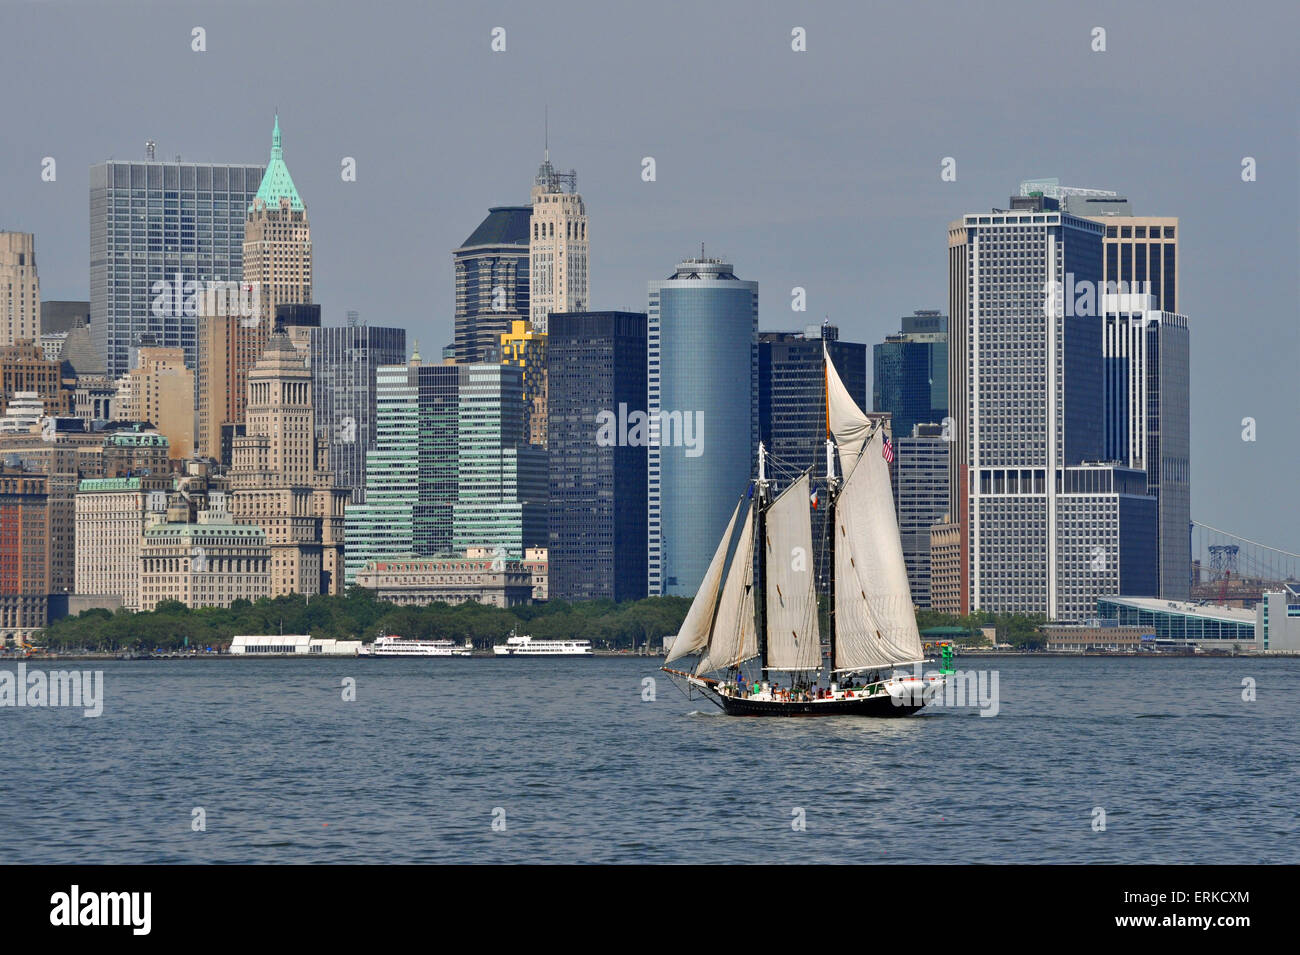 Sail ship on Hudson River in front of South Manhattan sky scrapers, Manhattan, New York City, New York, USA - Stock Image